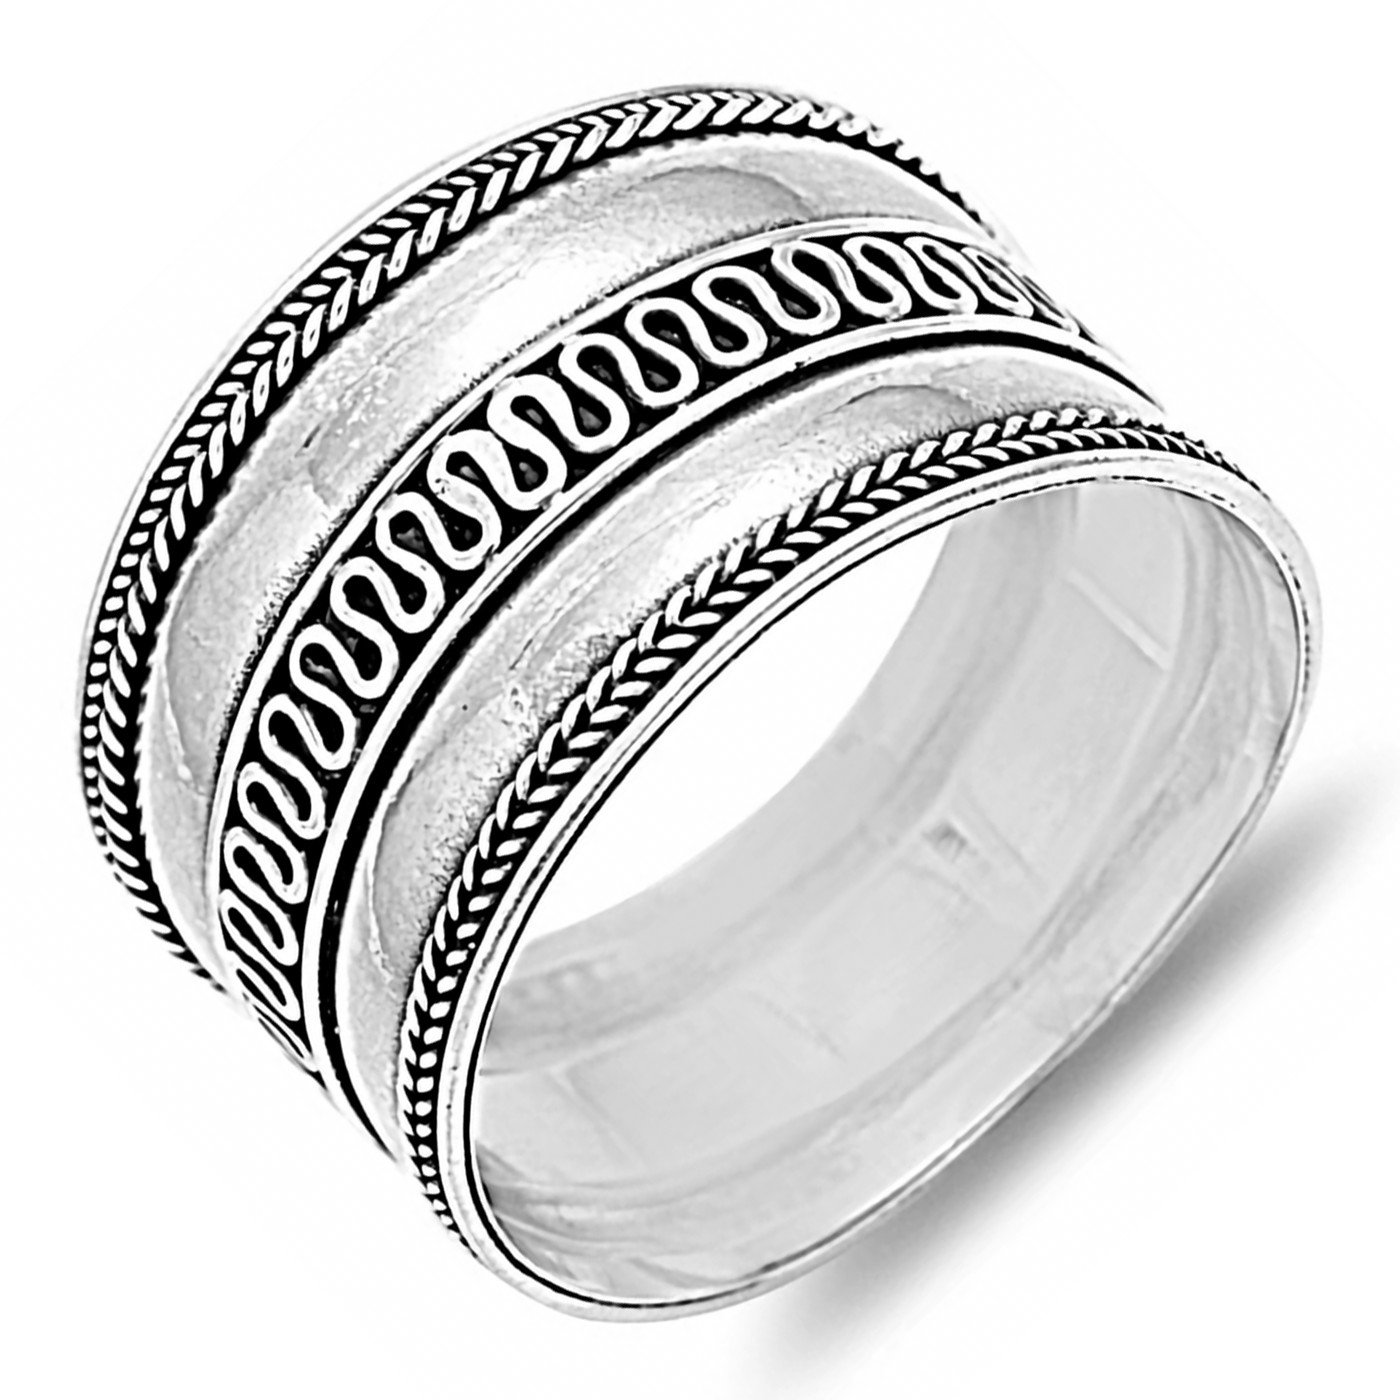 """NEW FASHION /""""BALI/"""" DESIGNS STERLING SILVER RINGS SIZES 5-12"""